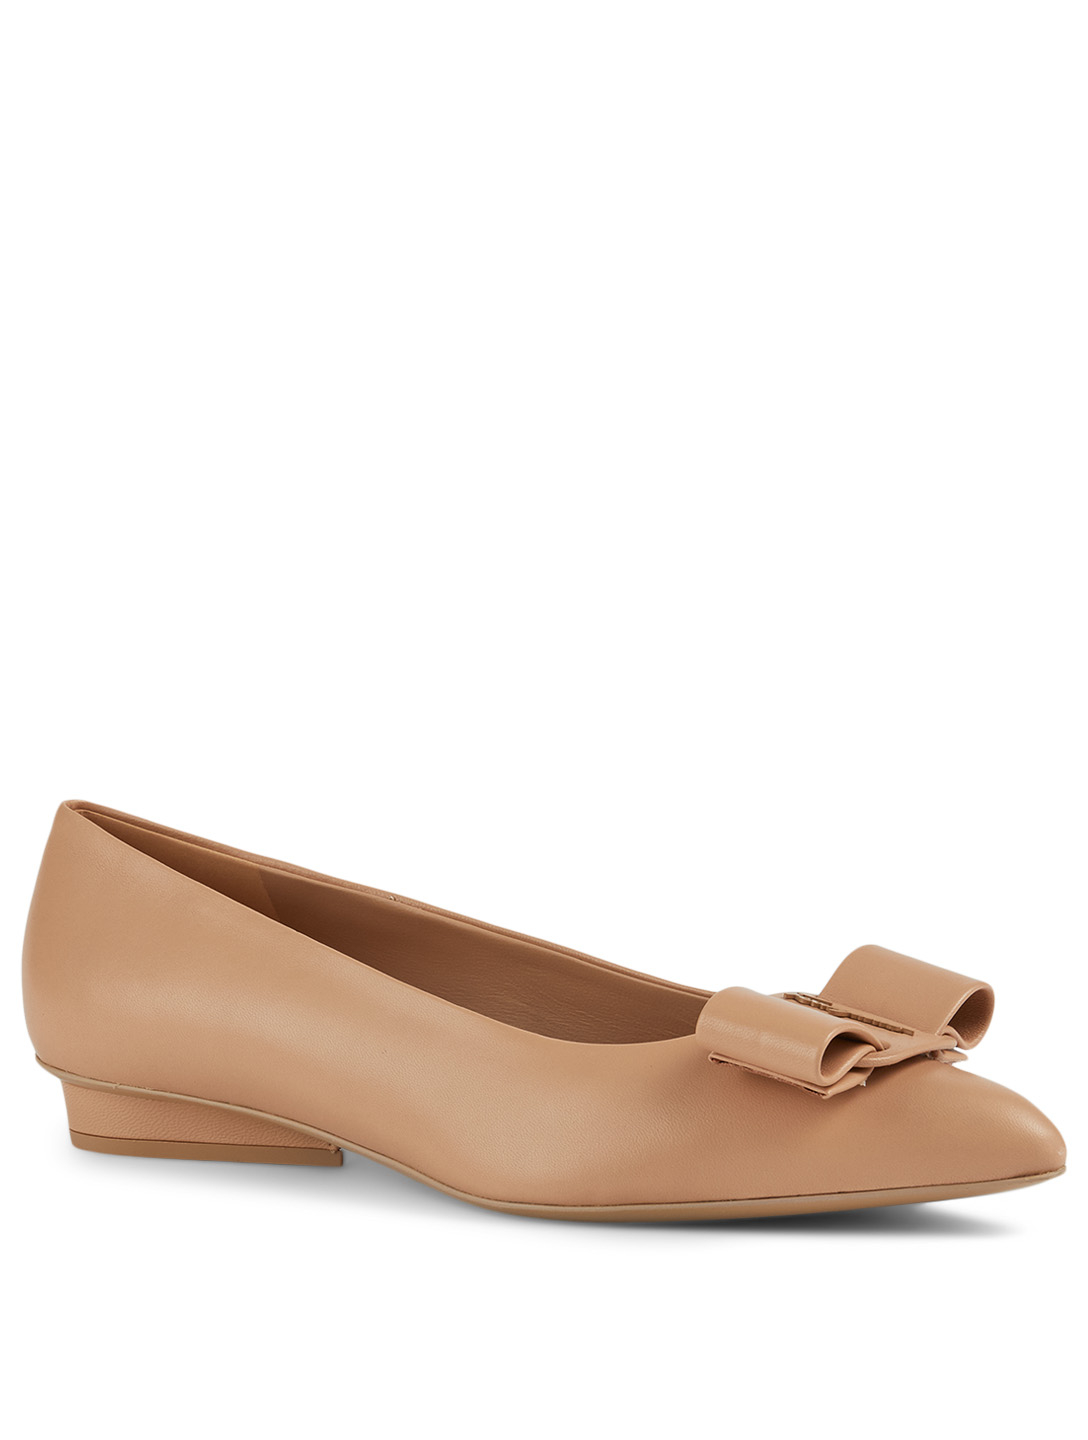 SALVATORE FERRAGAMO Viva Leather Ballet Flats Women's Brown